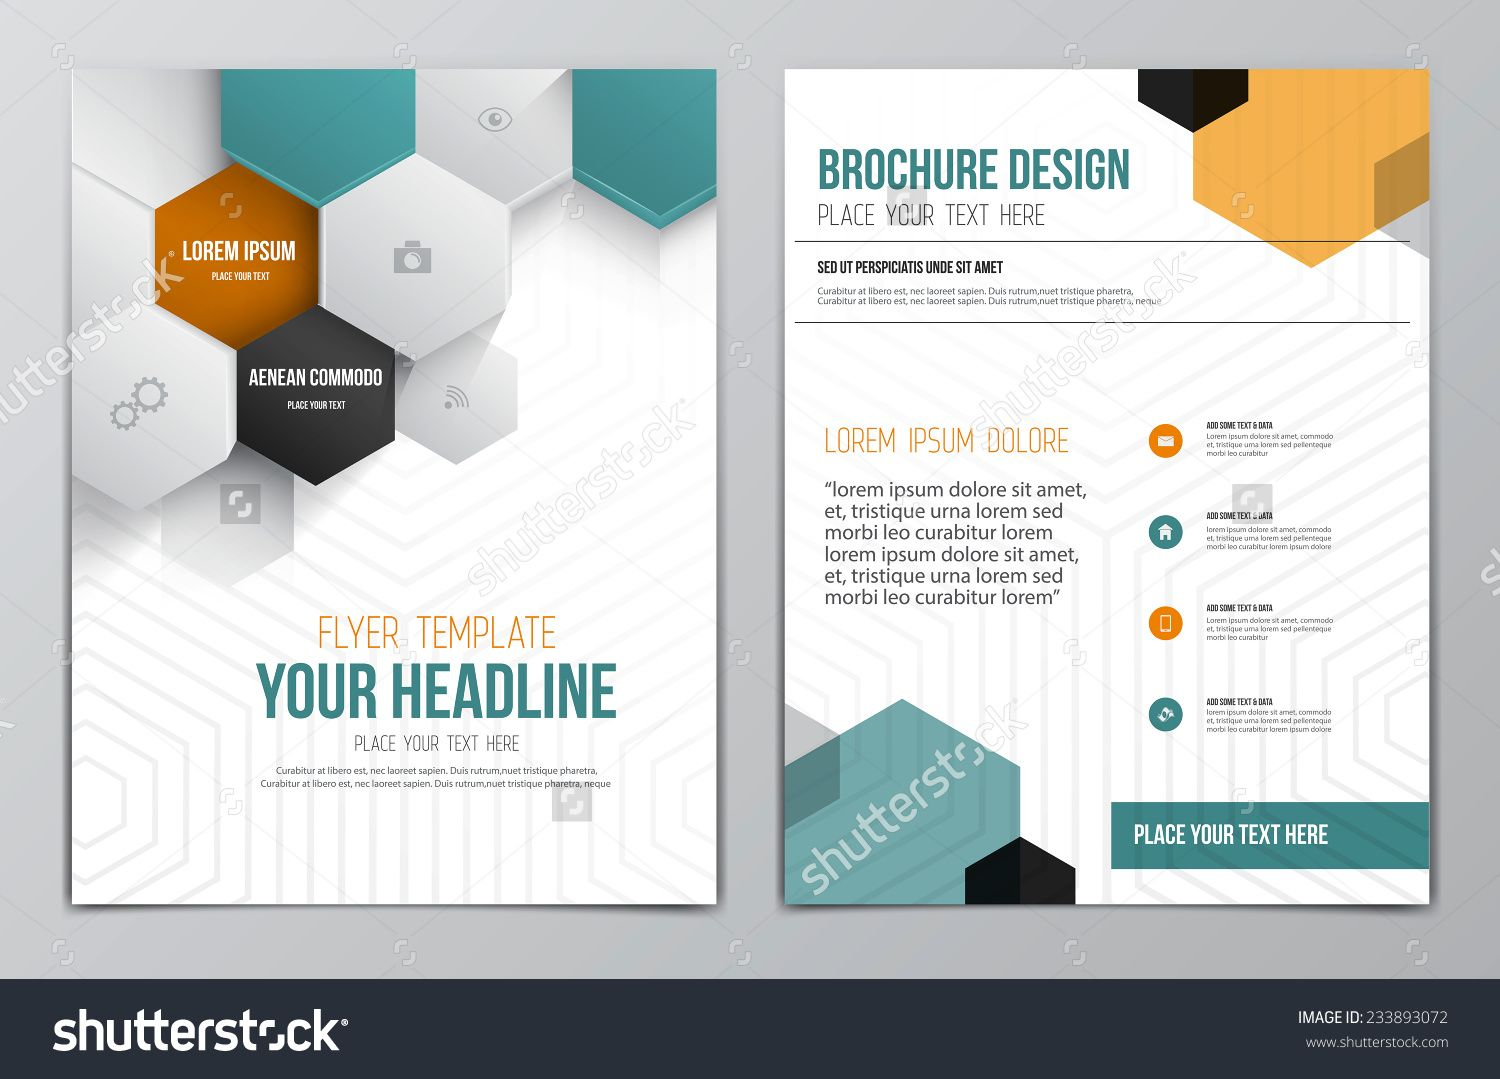 Brochure design template geometric shapes abstract for Brochures design templates